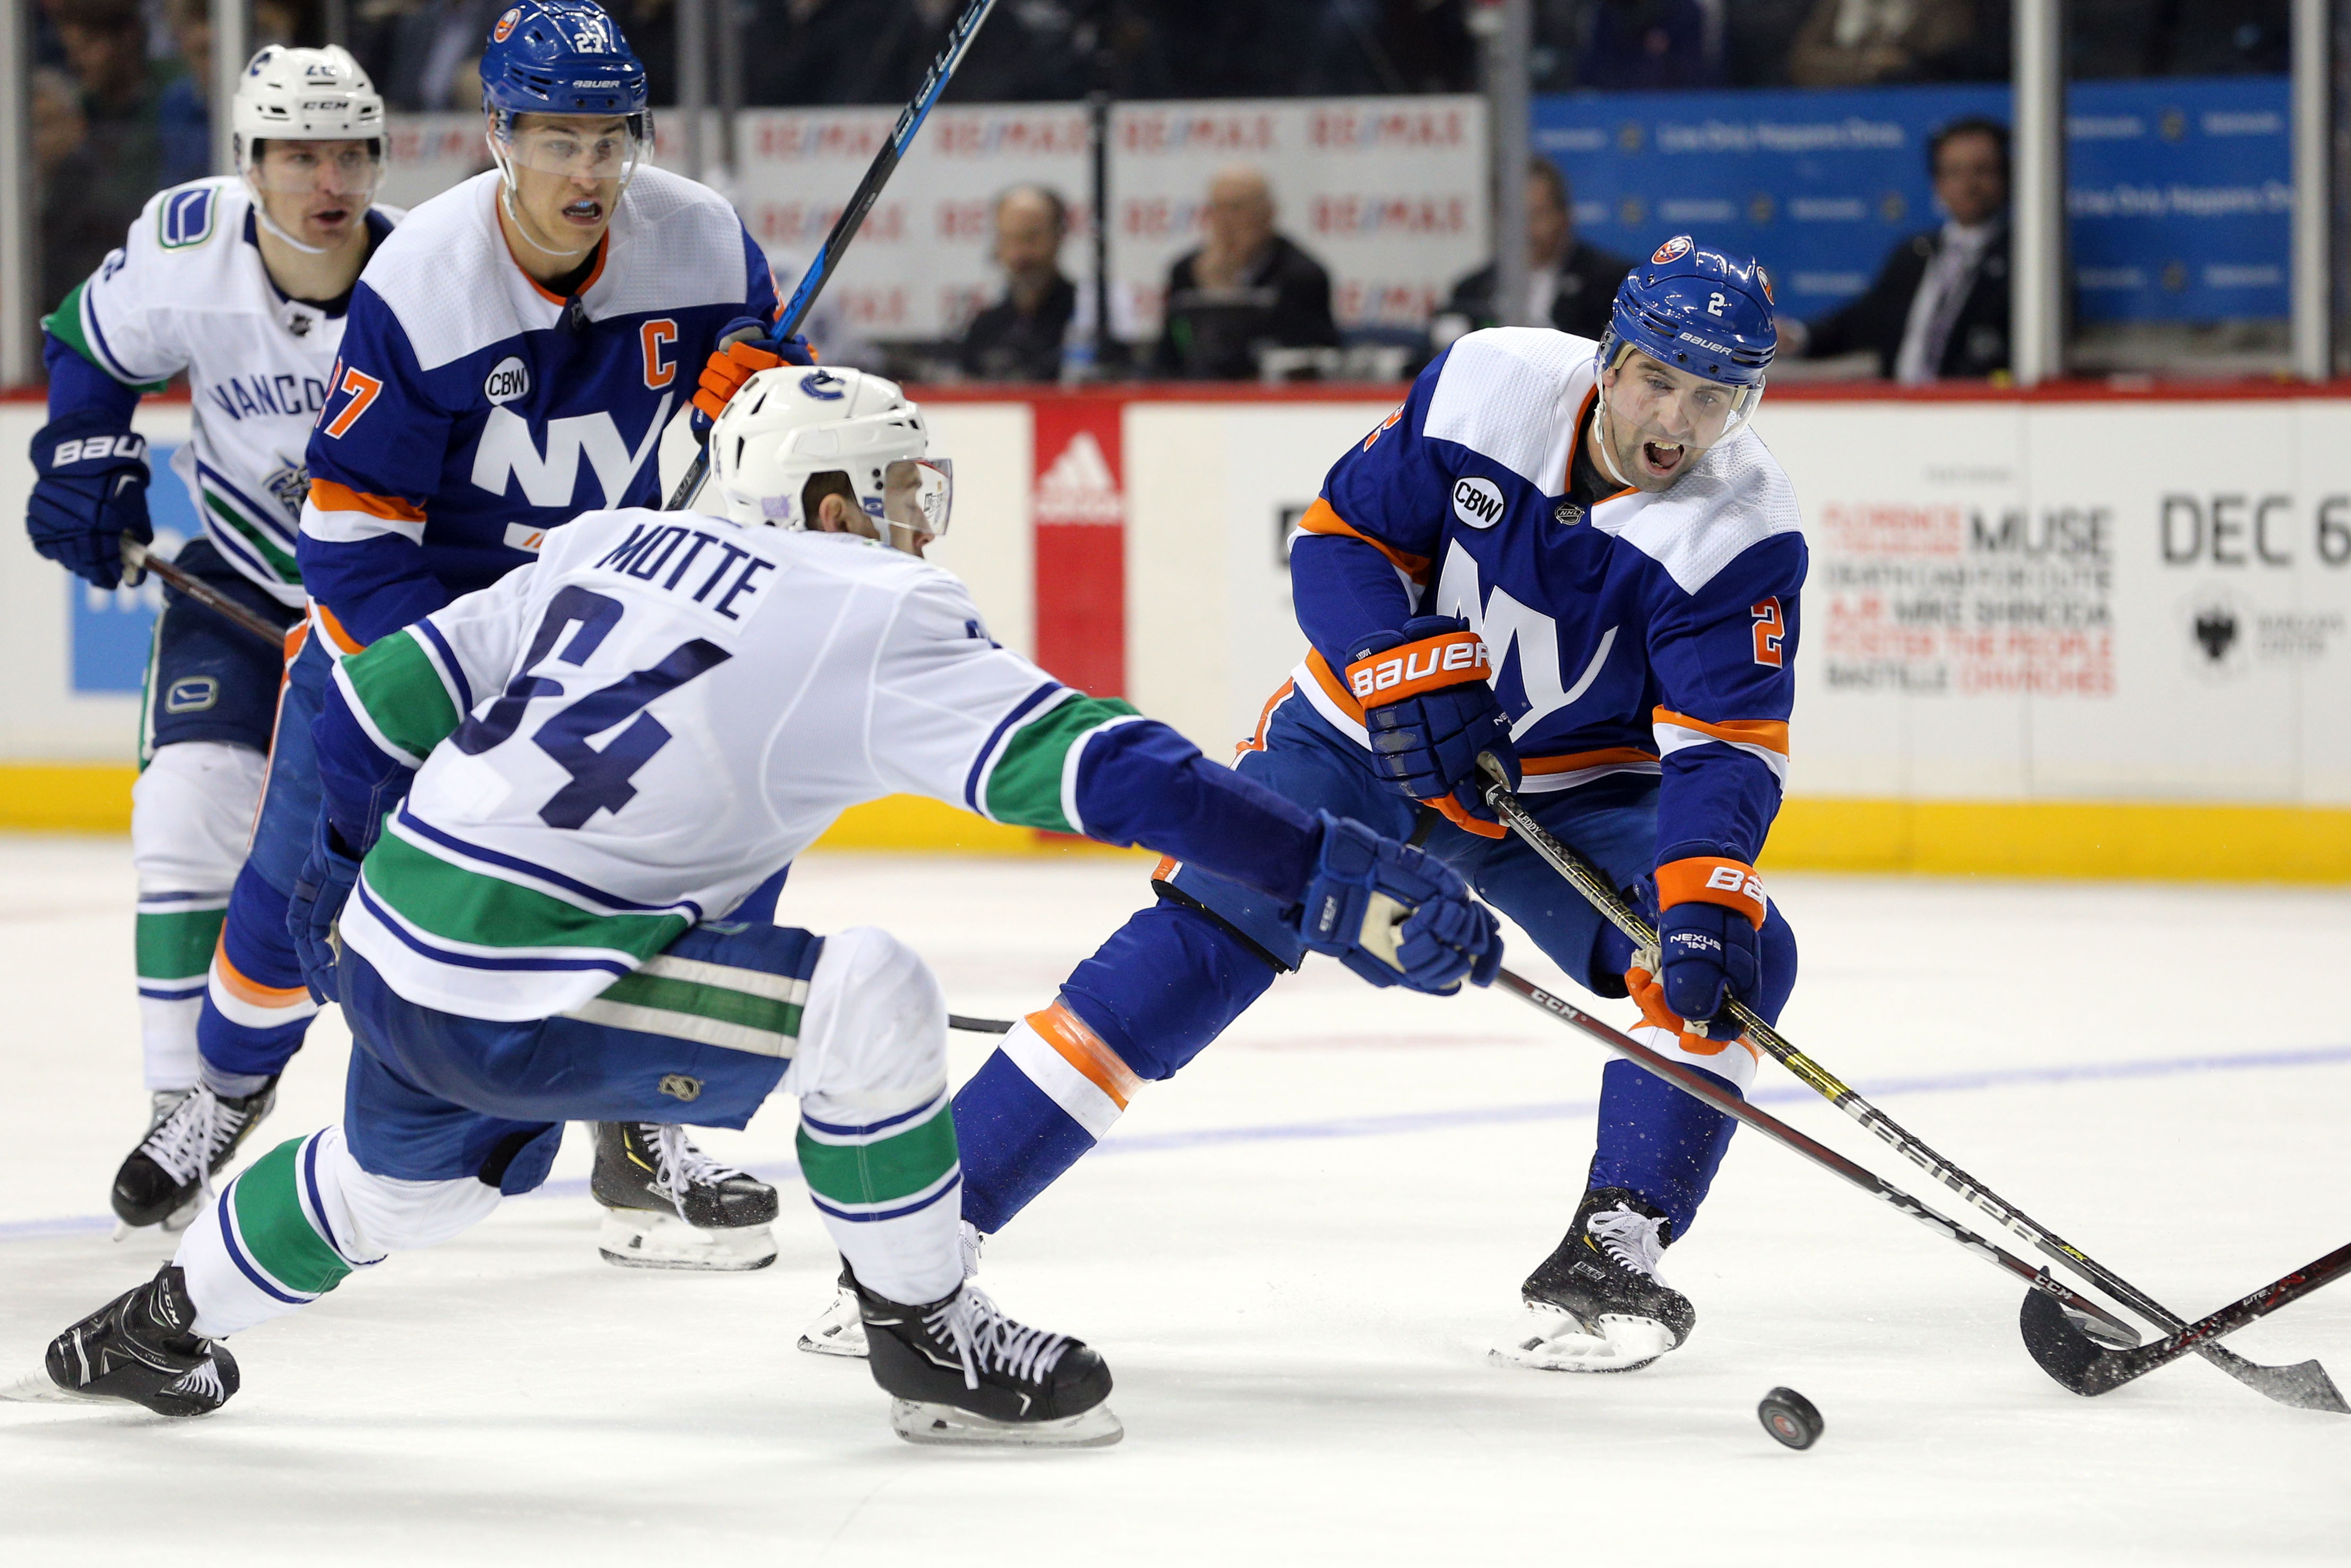 Nov 13, 2018; Brooklyn, NY, USA; New York Islanders defenseman Nick Leddy (2) plays the puck against Vancouver Canucks center Tyler Motte (64) during the second period at Barclays Center. Mandatory Credit: Brad Penner-USA TODAY Sports